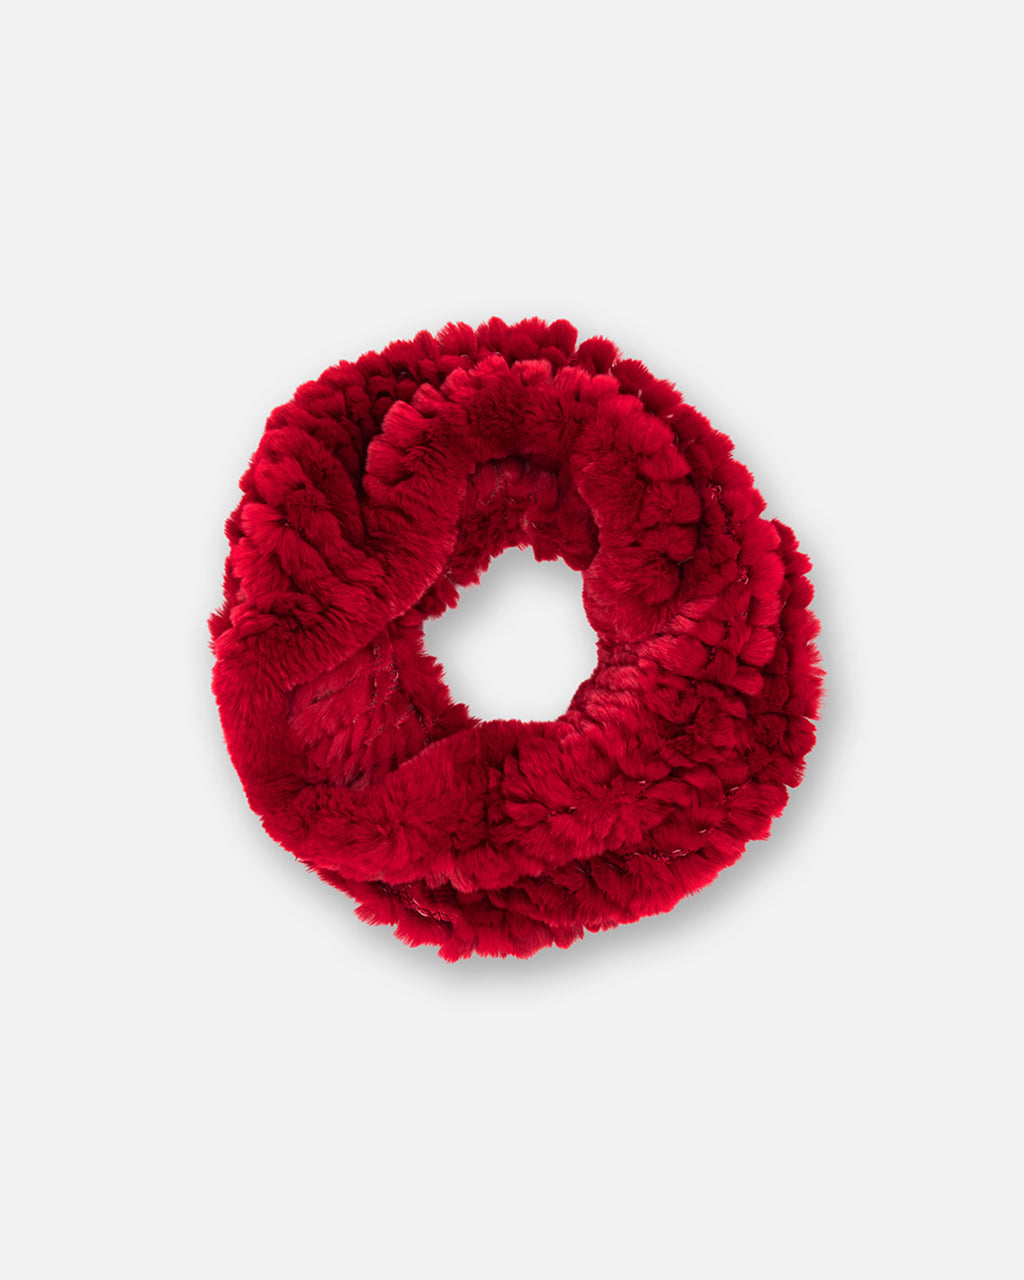 BH10157 - KNIT BUNNY INFINITY SCARF - accessories - ties - In a luxuriously soft fur, this scarf makes for the perfect addition to any fall wardrobe.